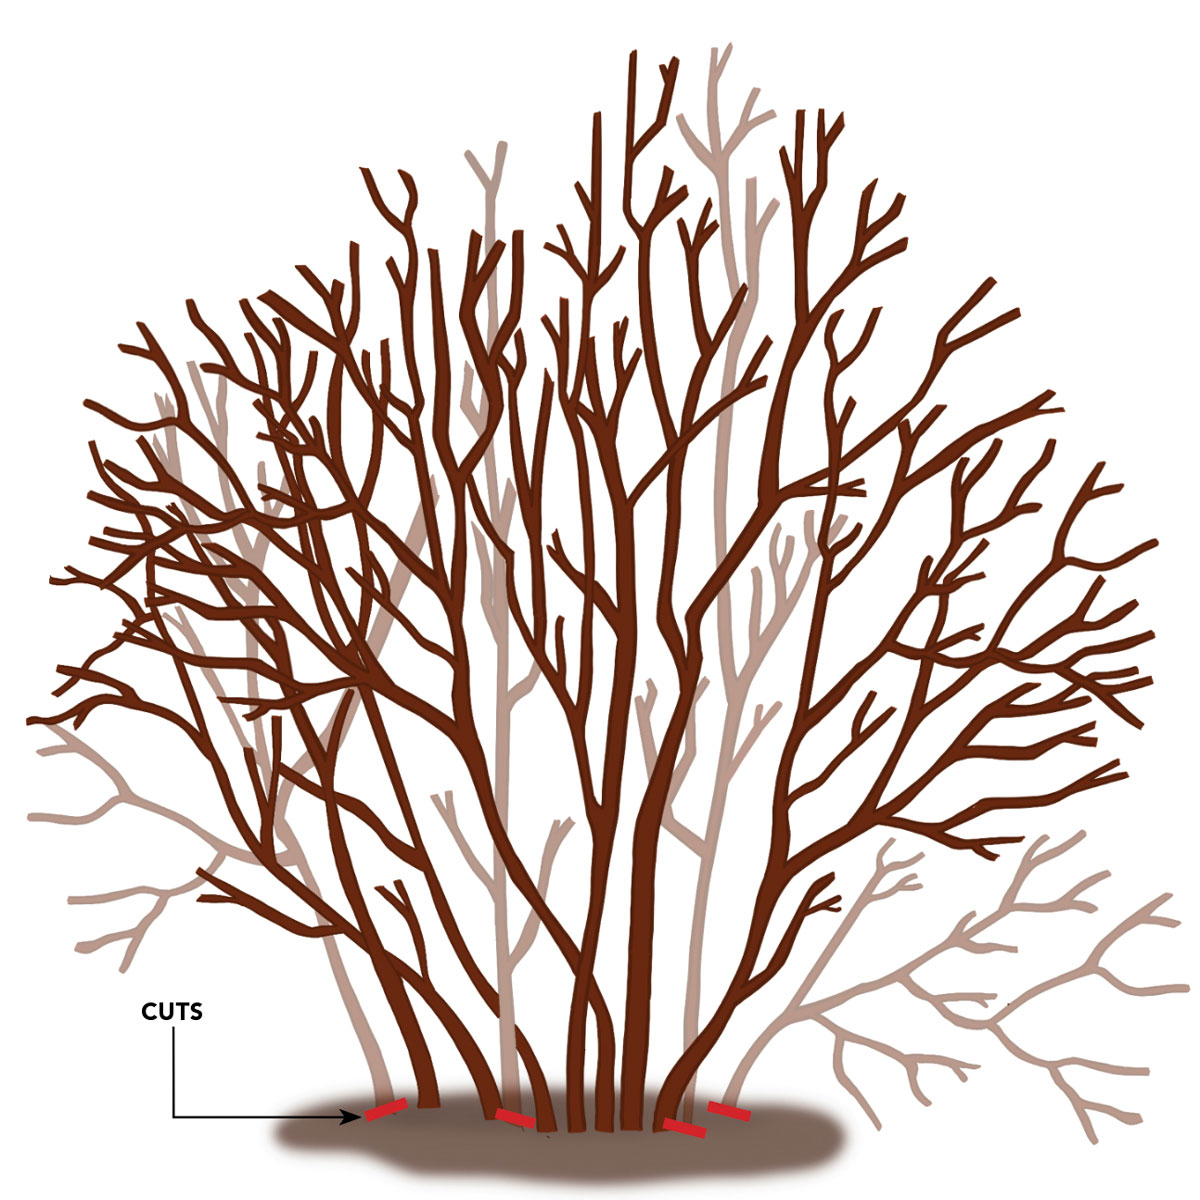 Selectively remove up to a third of the oldest stems each year (in late winter) over a three-year cycle.